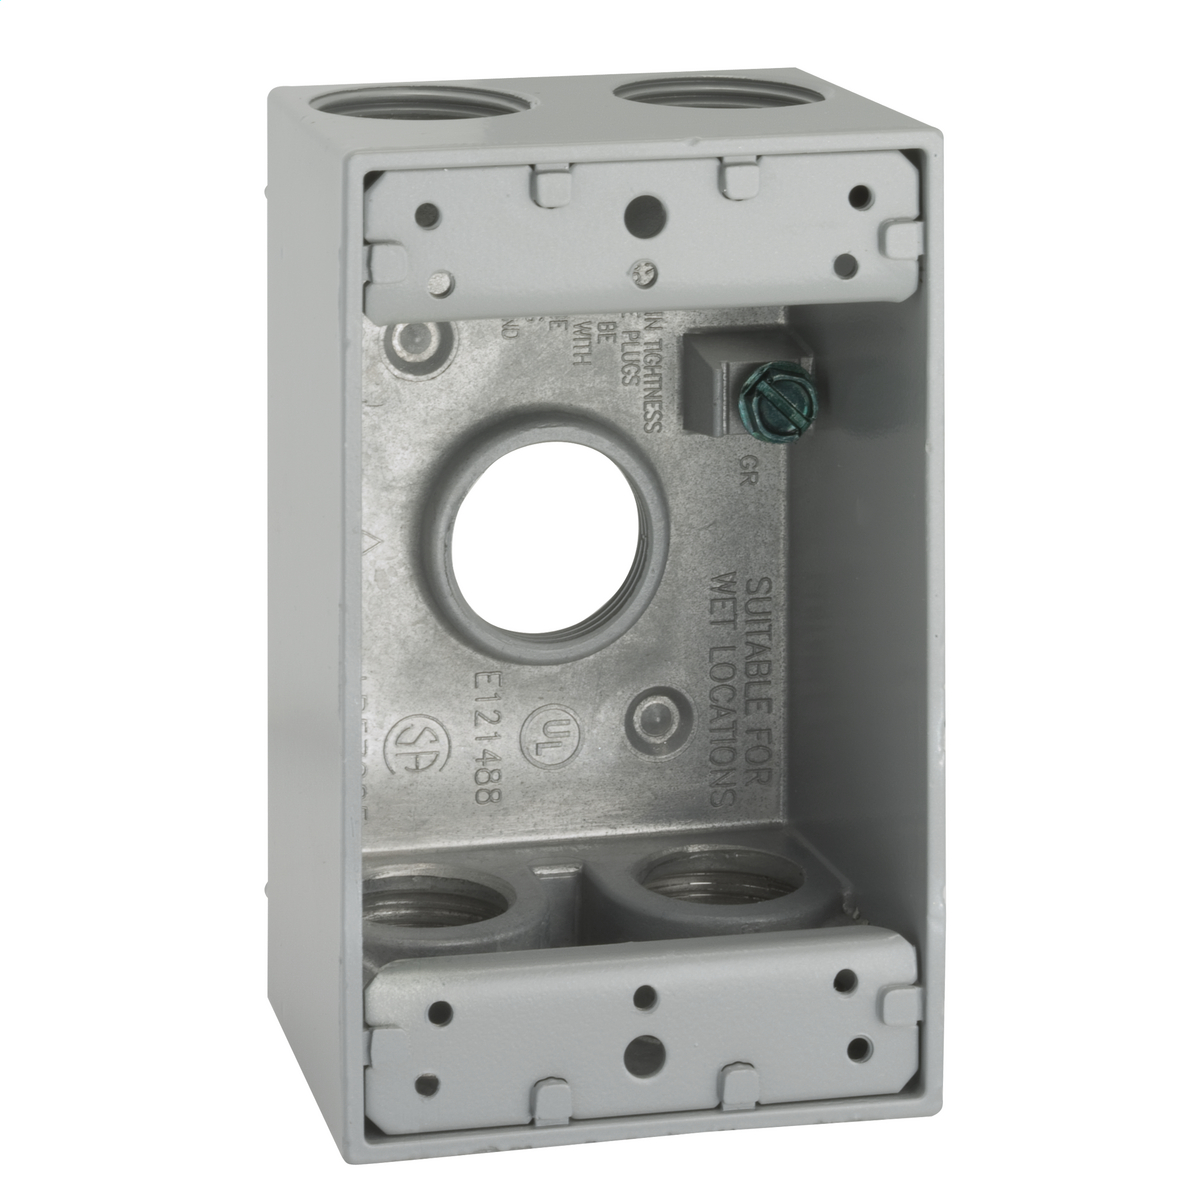 Hubbell-Raco 5331-0 BELL Weatherproof Outlet Box